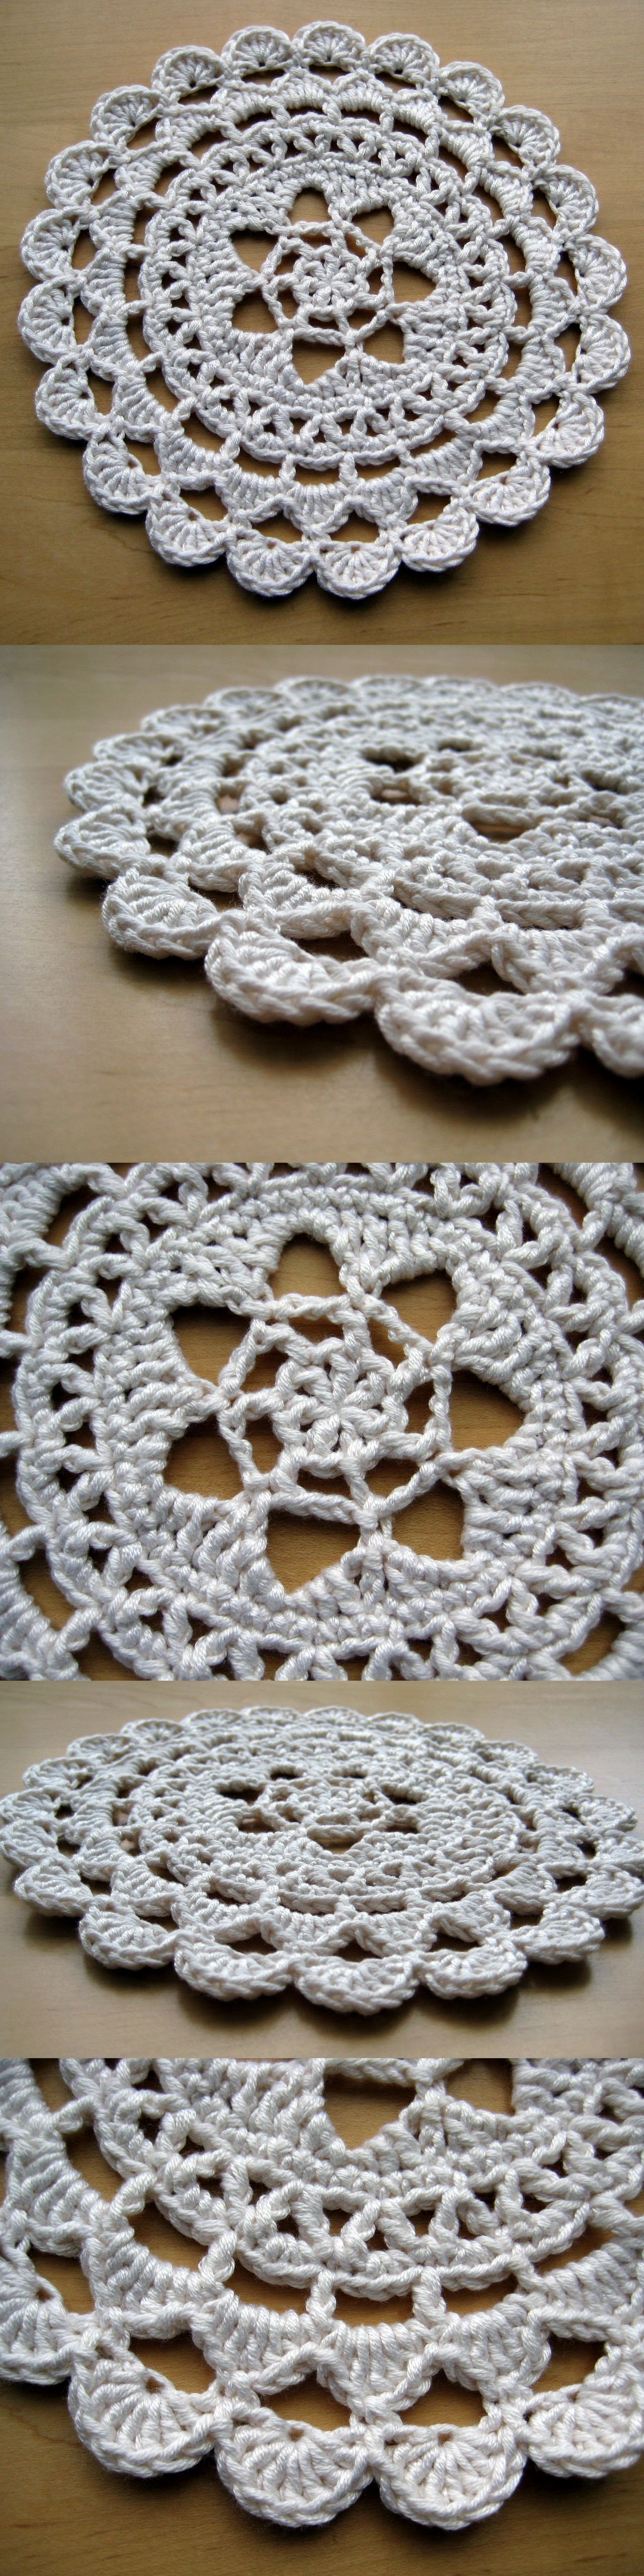 Passion flower doily make my day creative pretty passion flower doily free pattern in dk weight yarn bankloansurffo Image collections